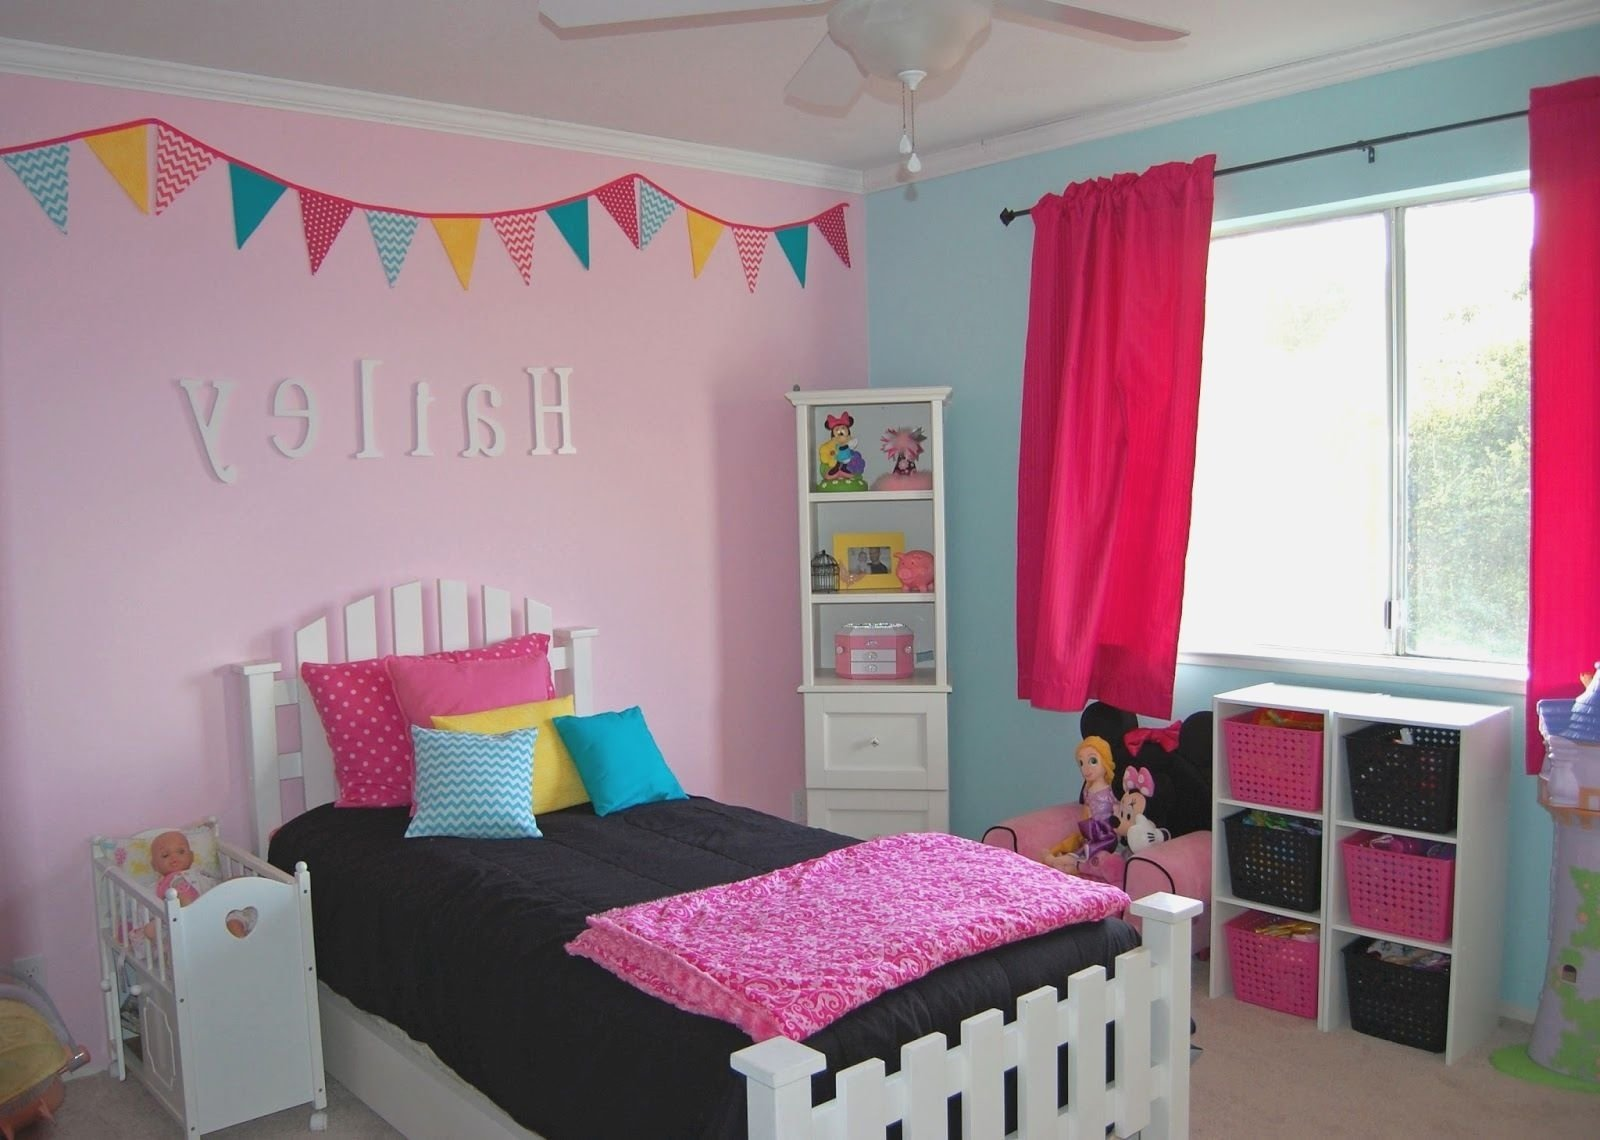 10 Pretty 10 Year Old Bedroom Ideas bedroom ideas for 10yr old girl home design ideas master bedroom 2020